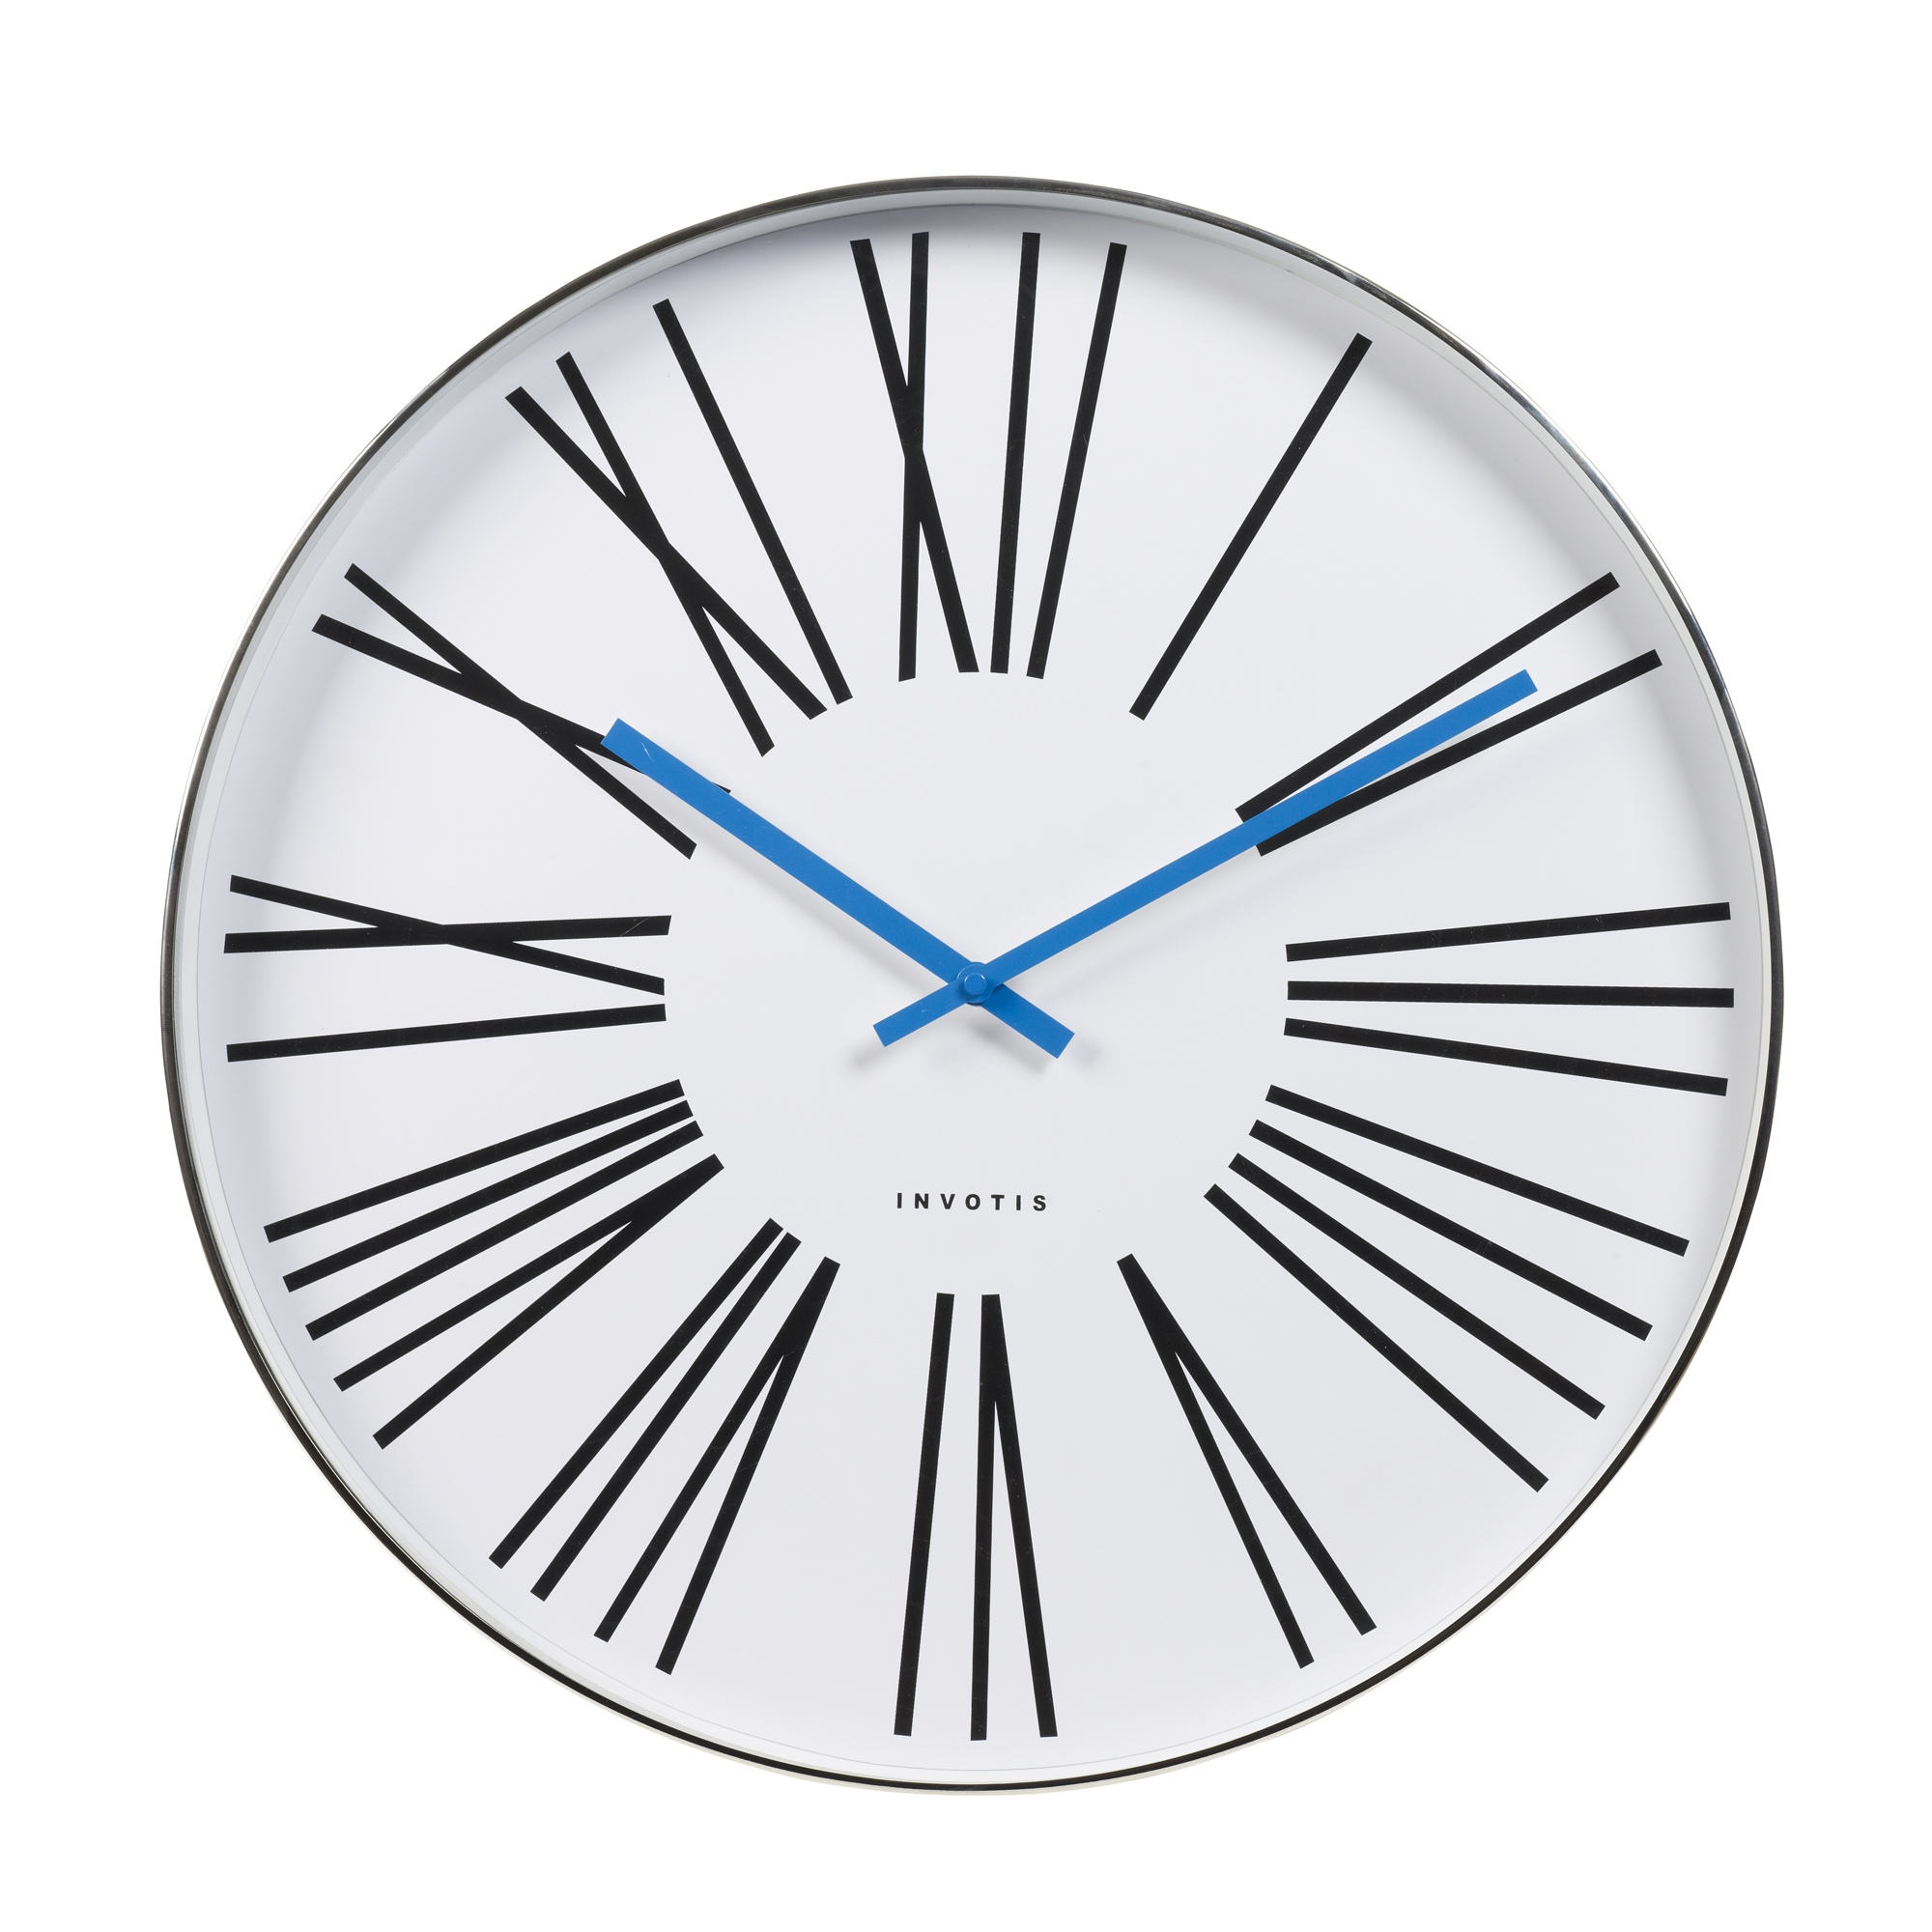 Invotis oversized Wall Clock with Roman Numerals and Blue hand